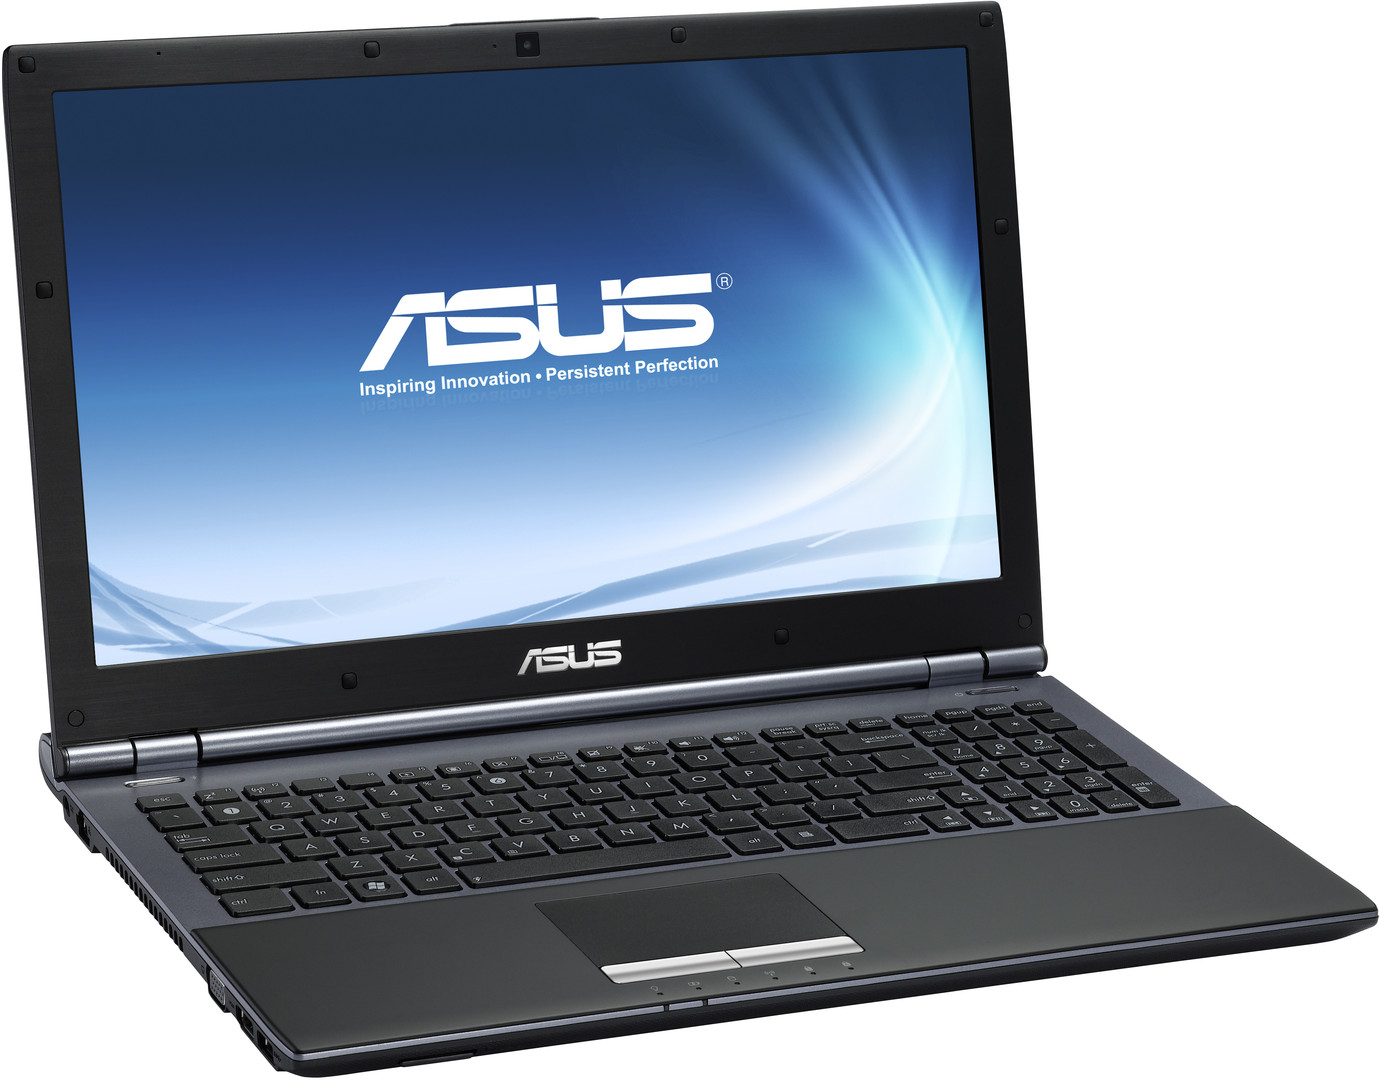 ASUS U56E NOTEBOOK MANAGEMENT DRIVERS FOR WINDOWS 8